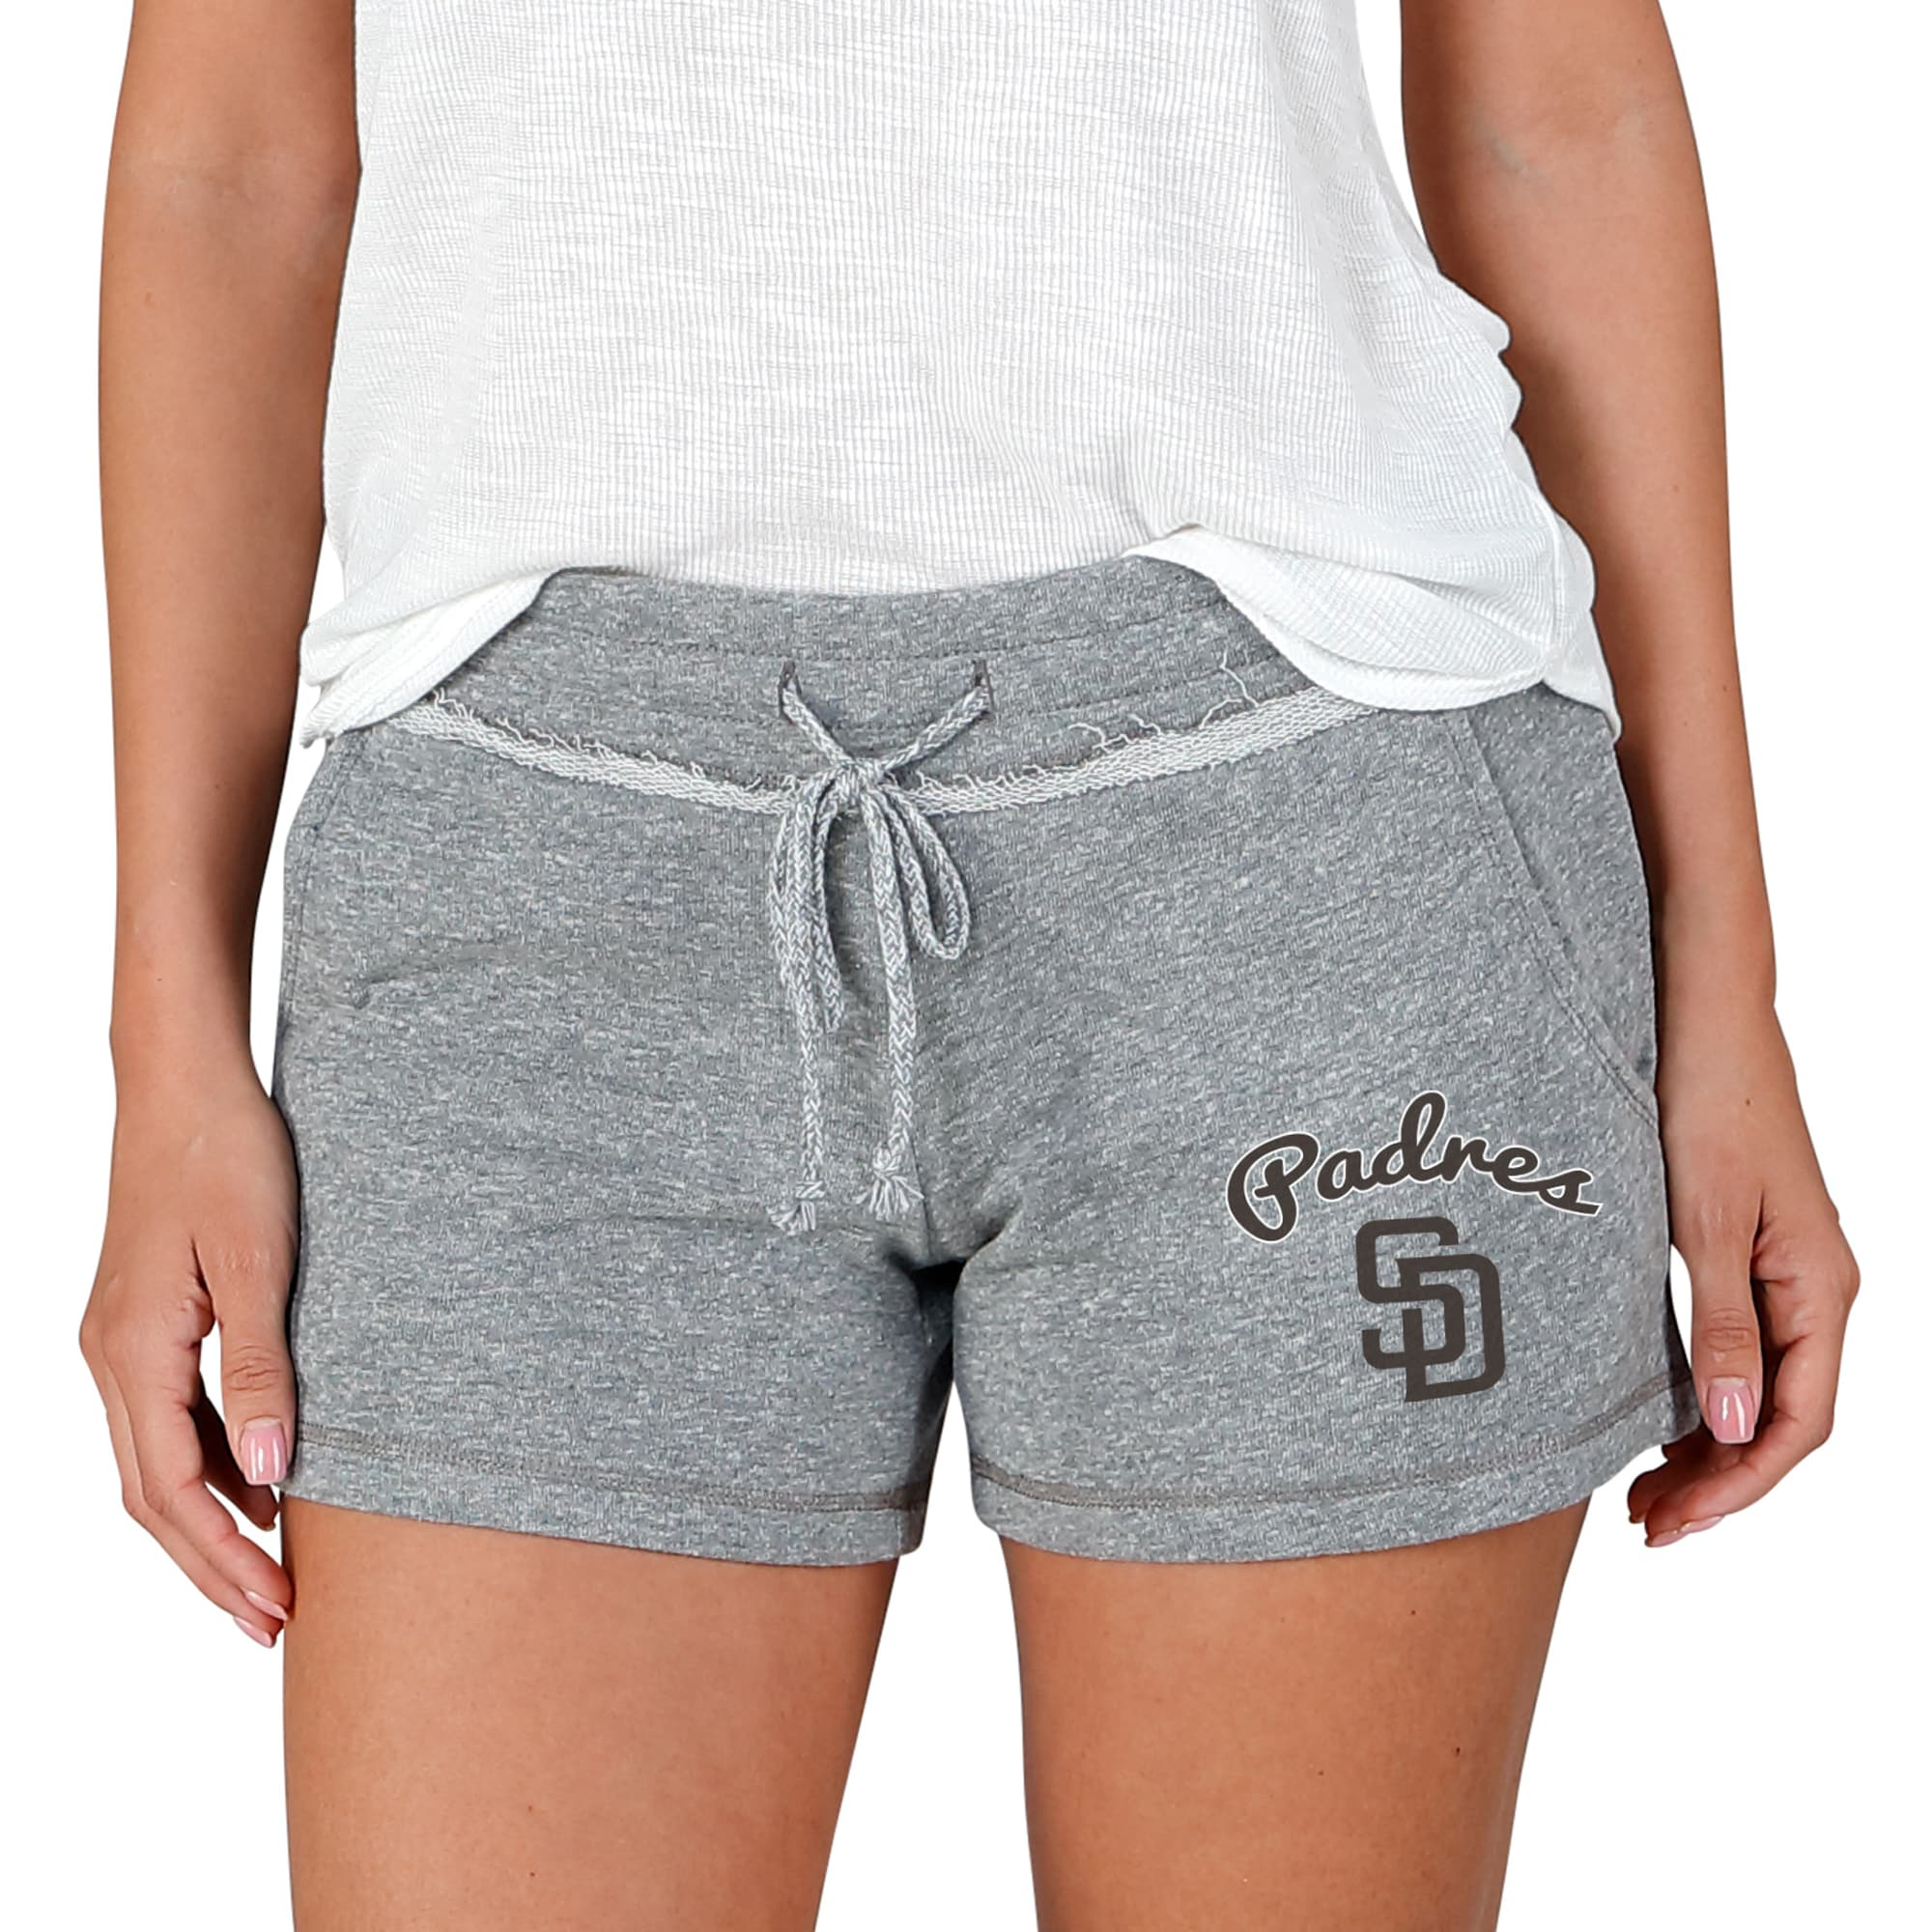 San Diego Padres Concepts Sport Women's Mainstream Terry Shorts - Gray